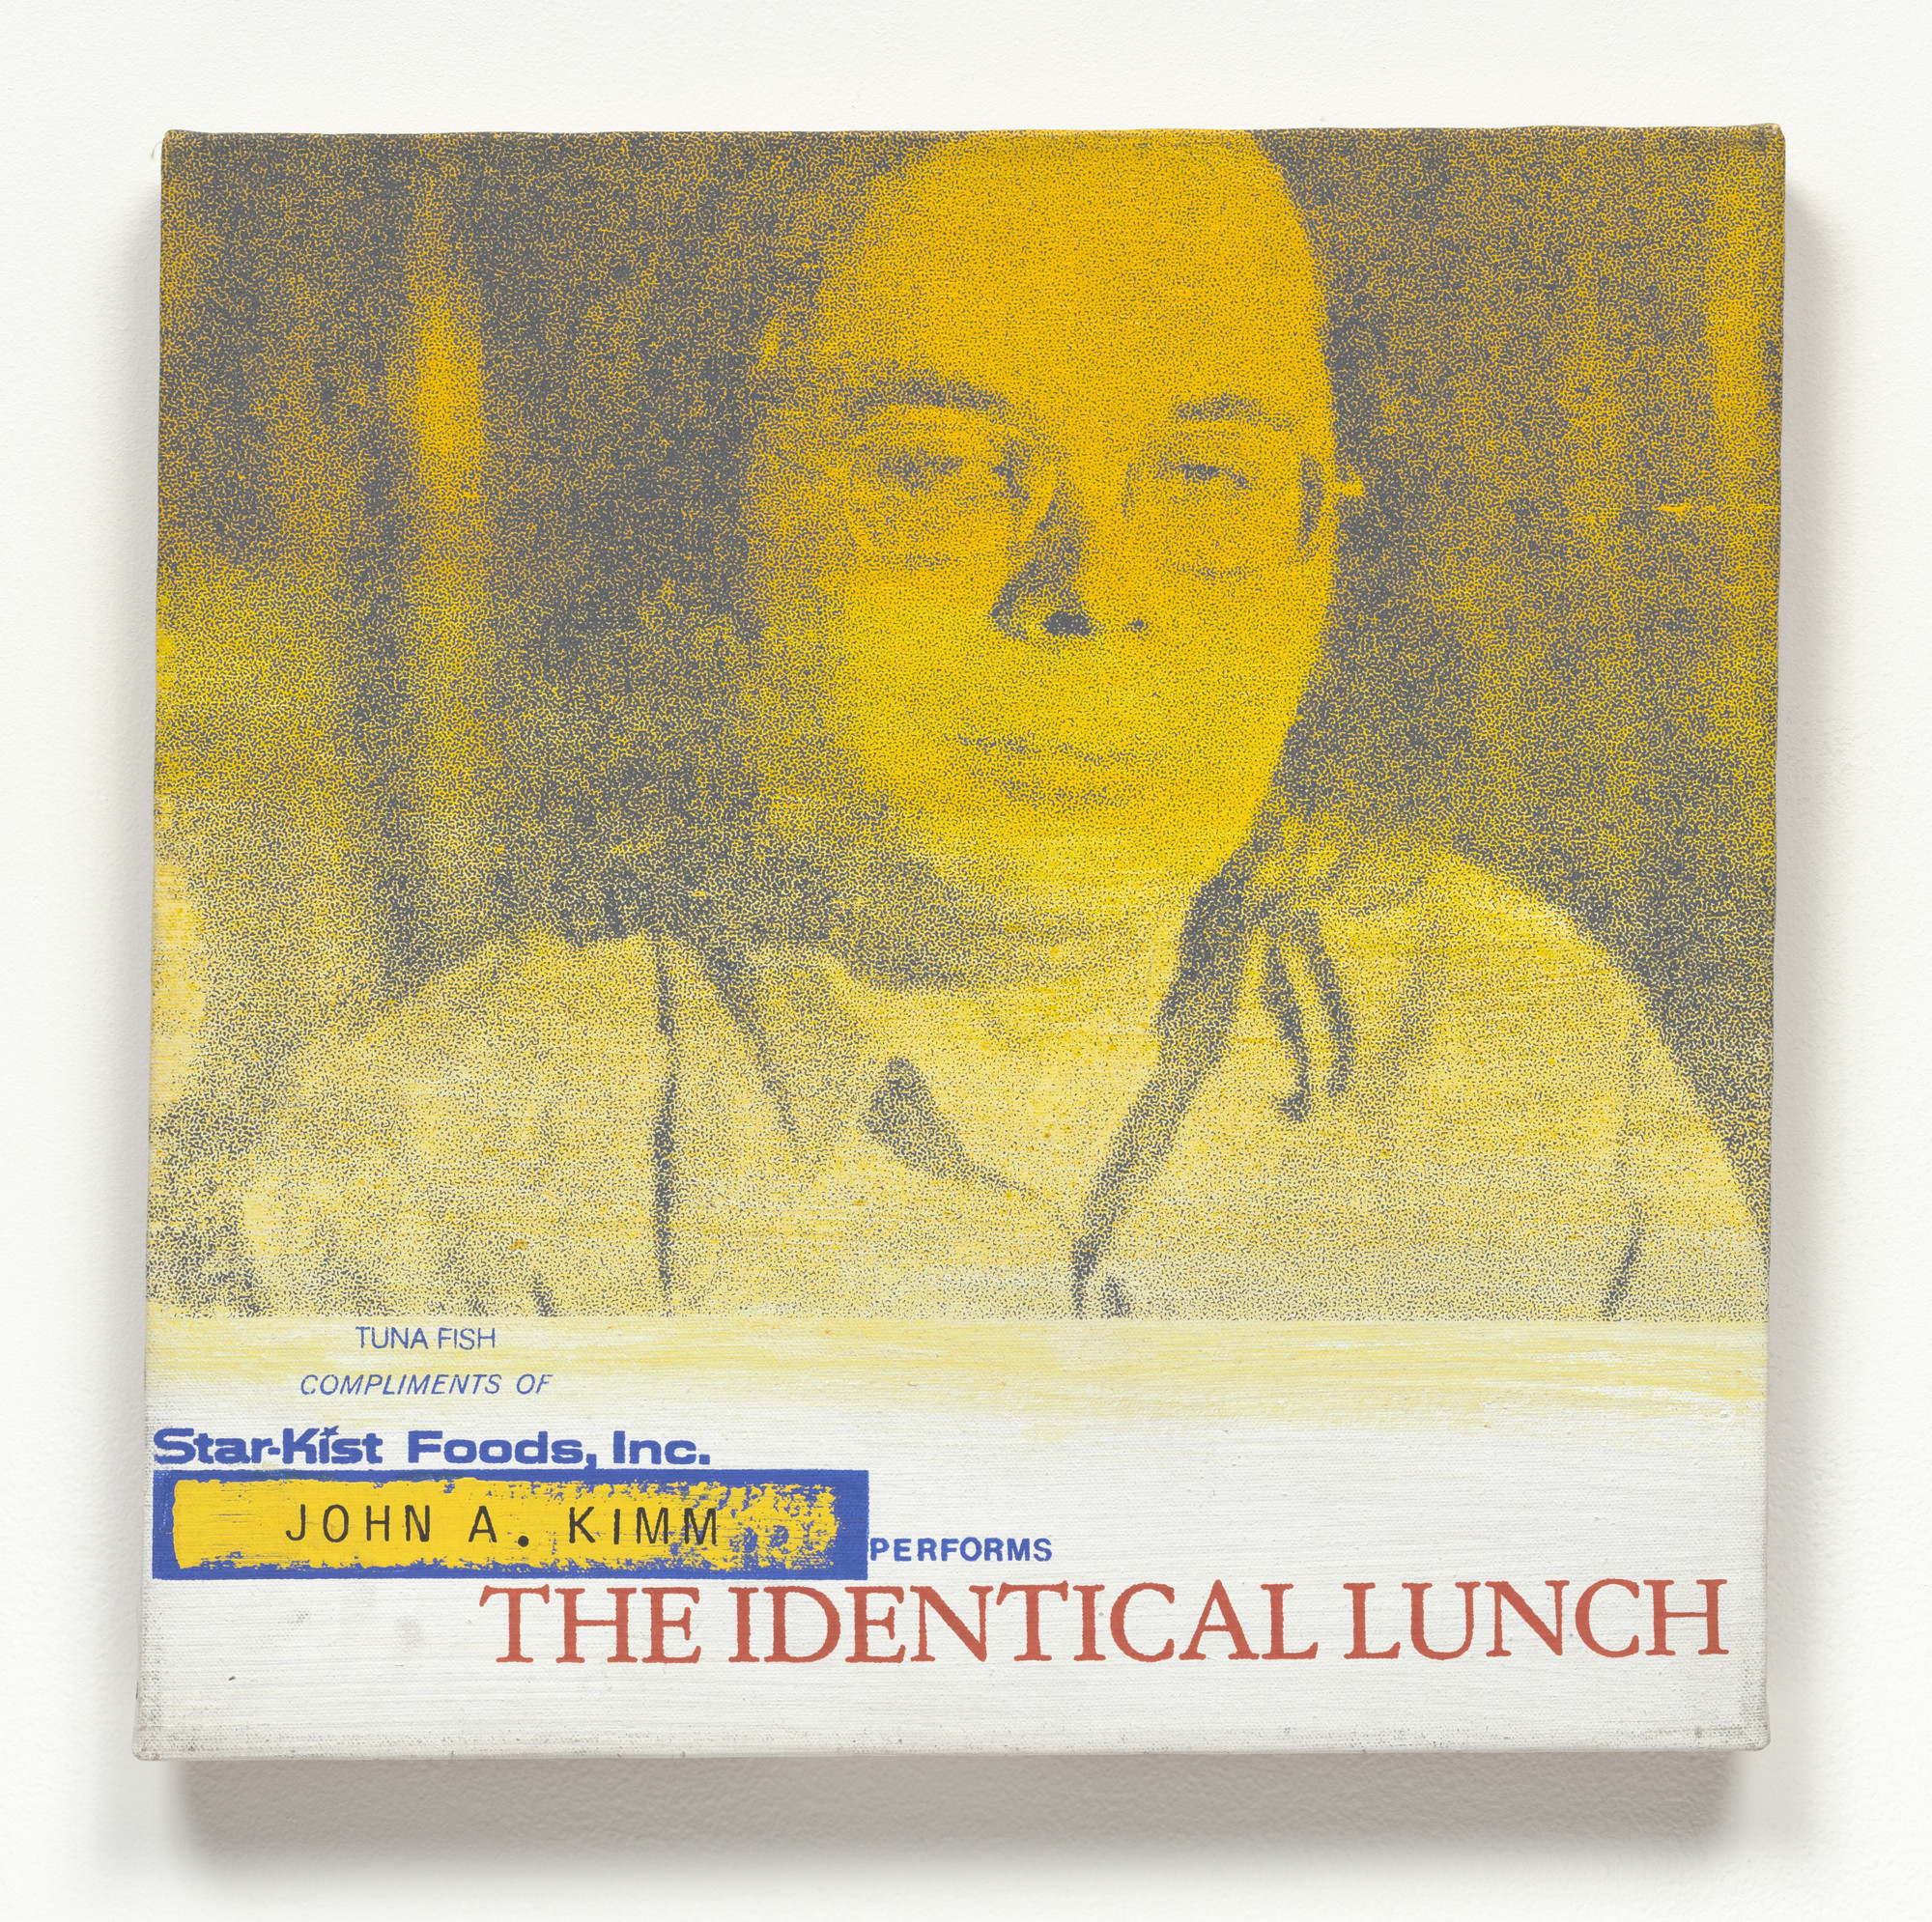 Alison Knowles. John A. Kimm Performs The Identical Lunch. 1969, realized 1973